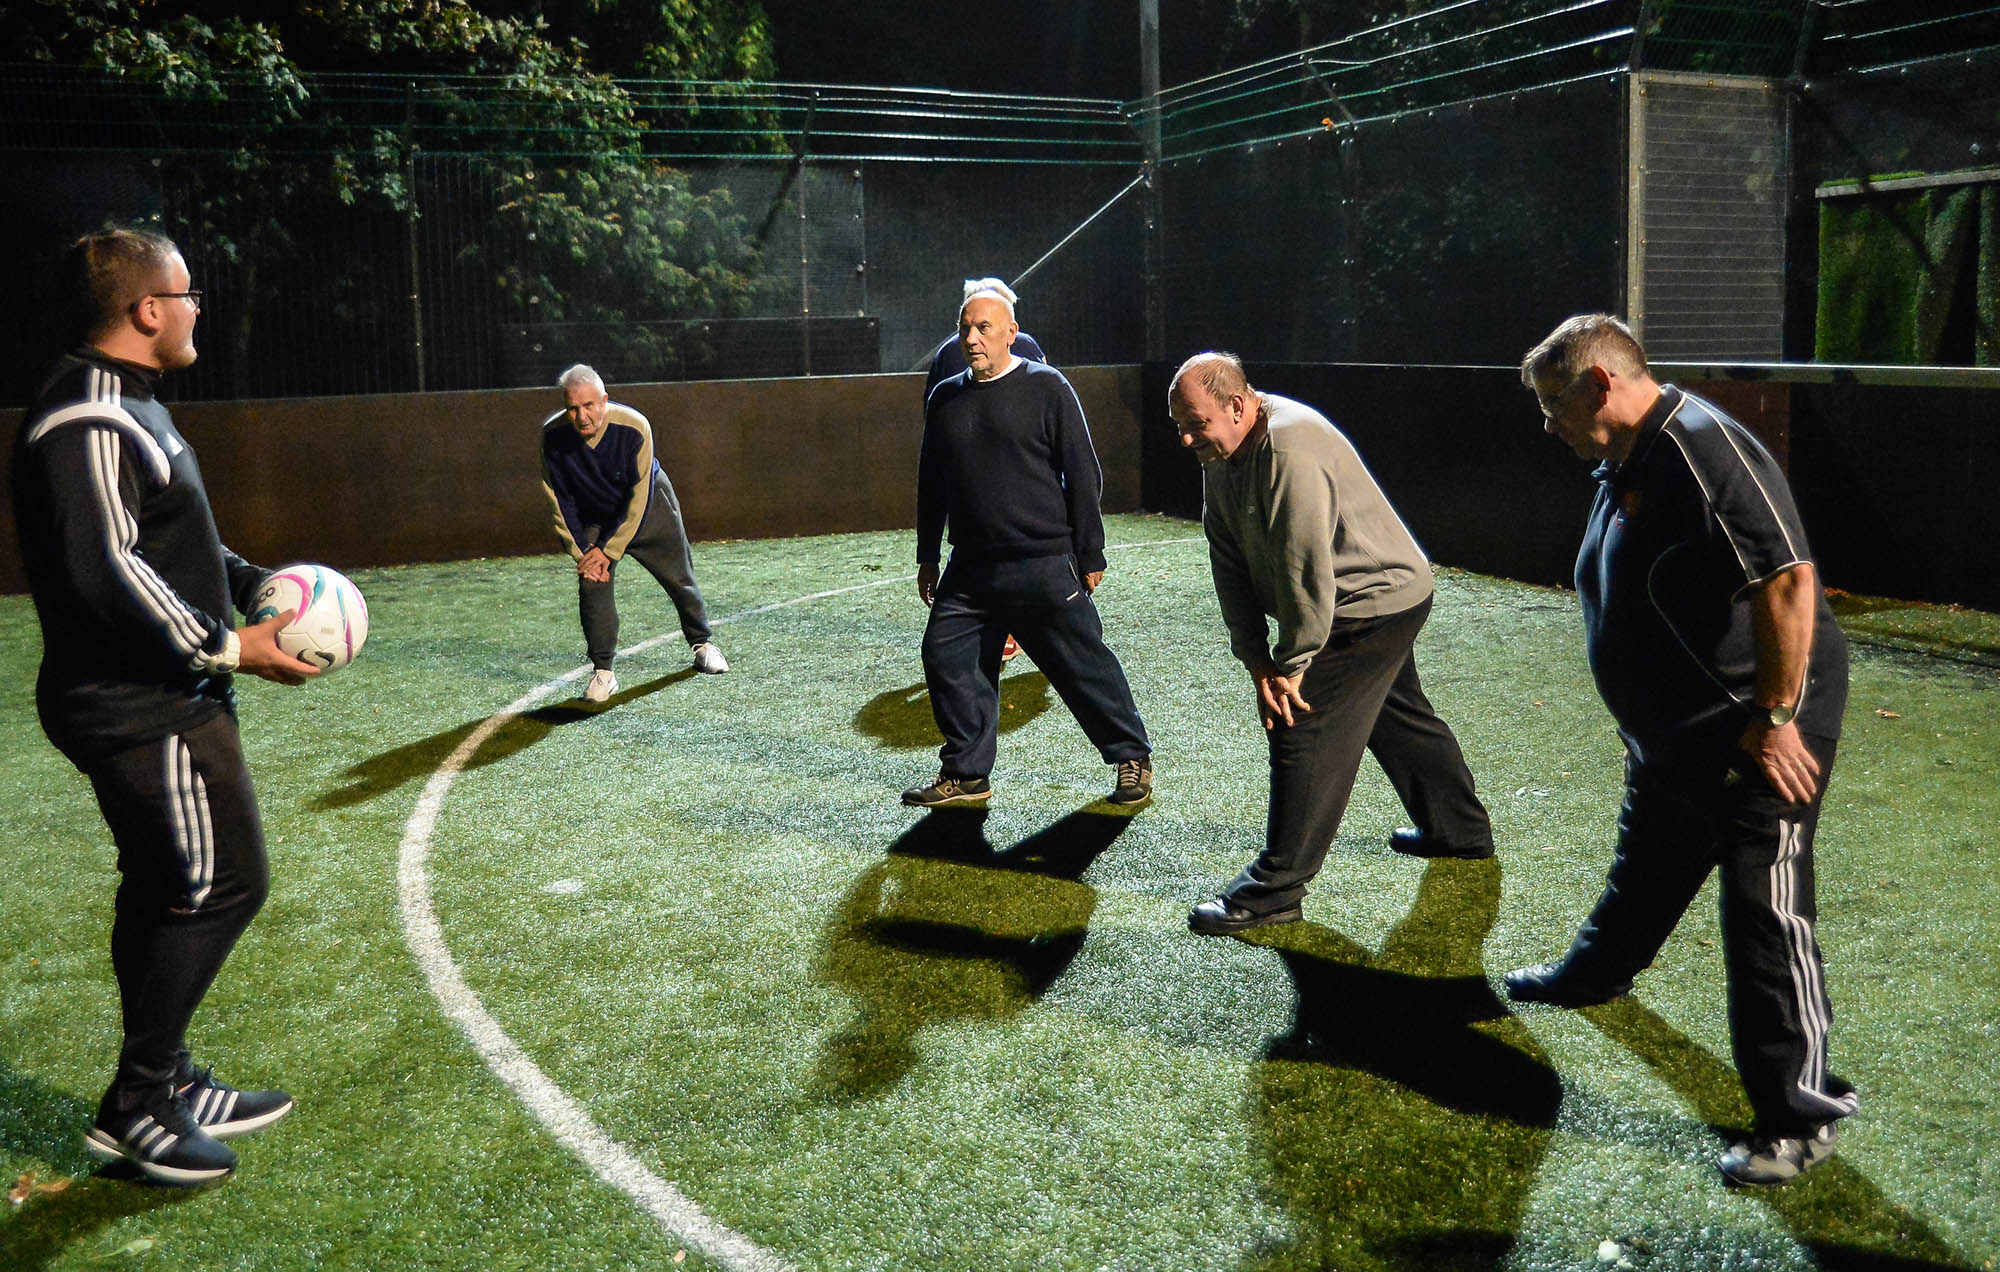 group of older men stretching before walking football